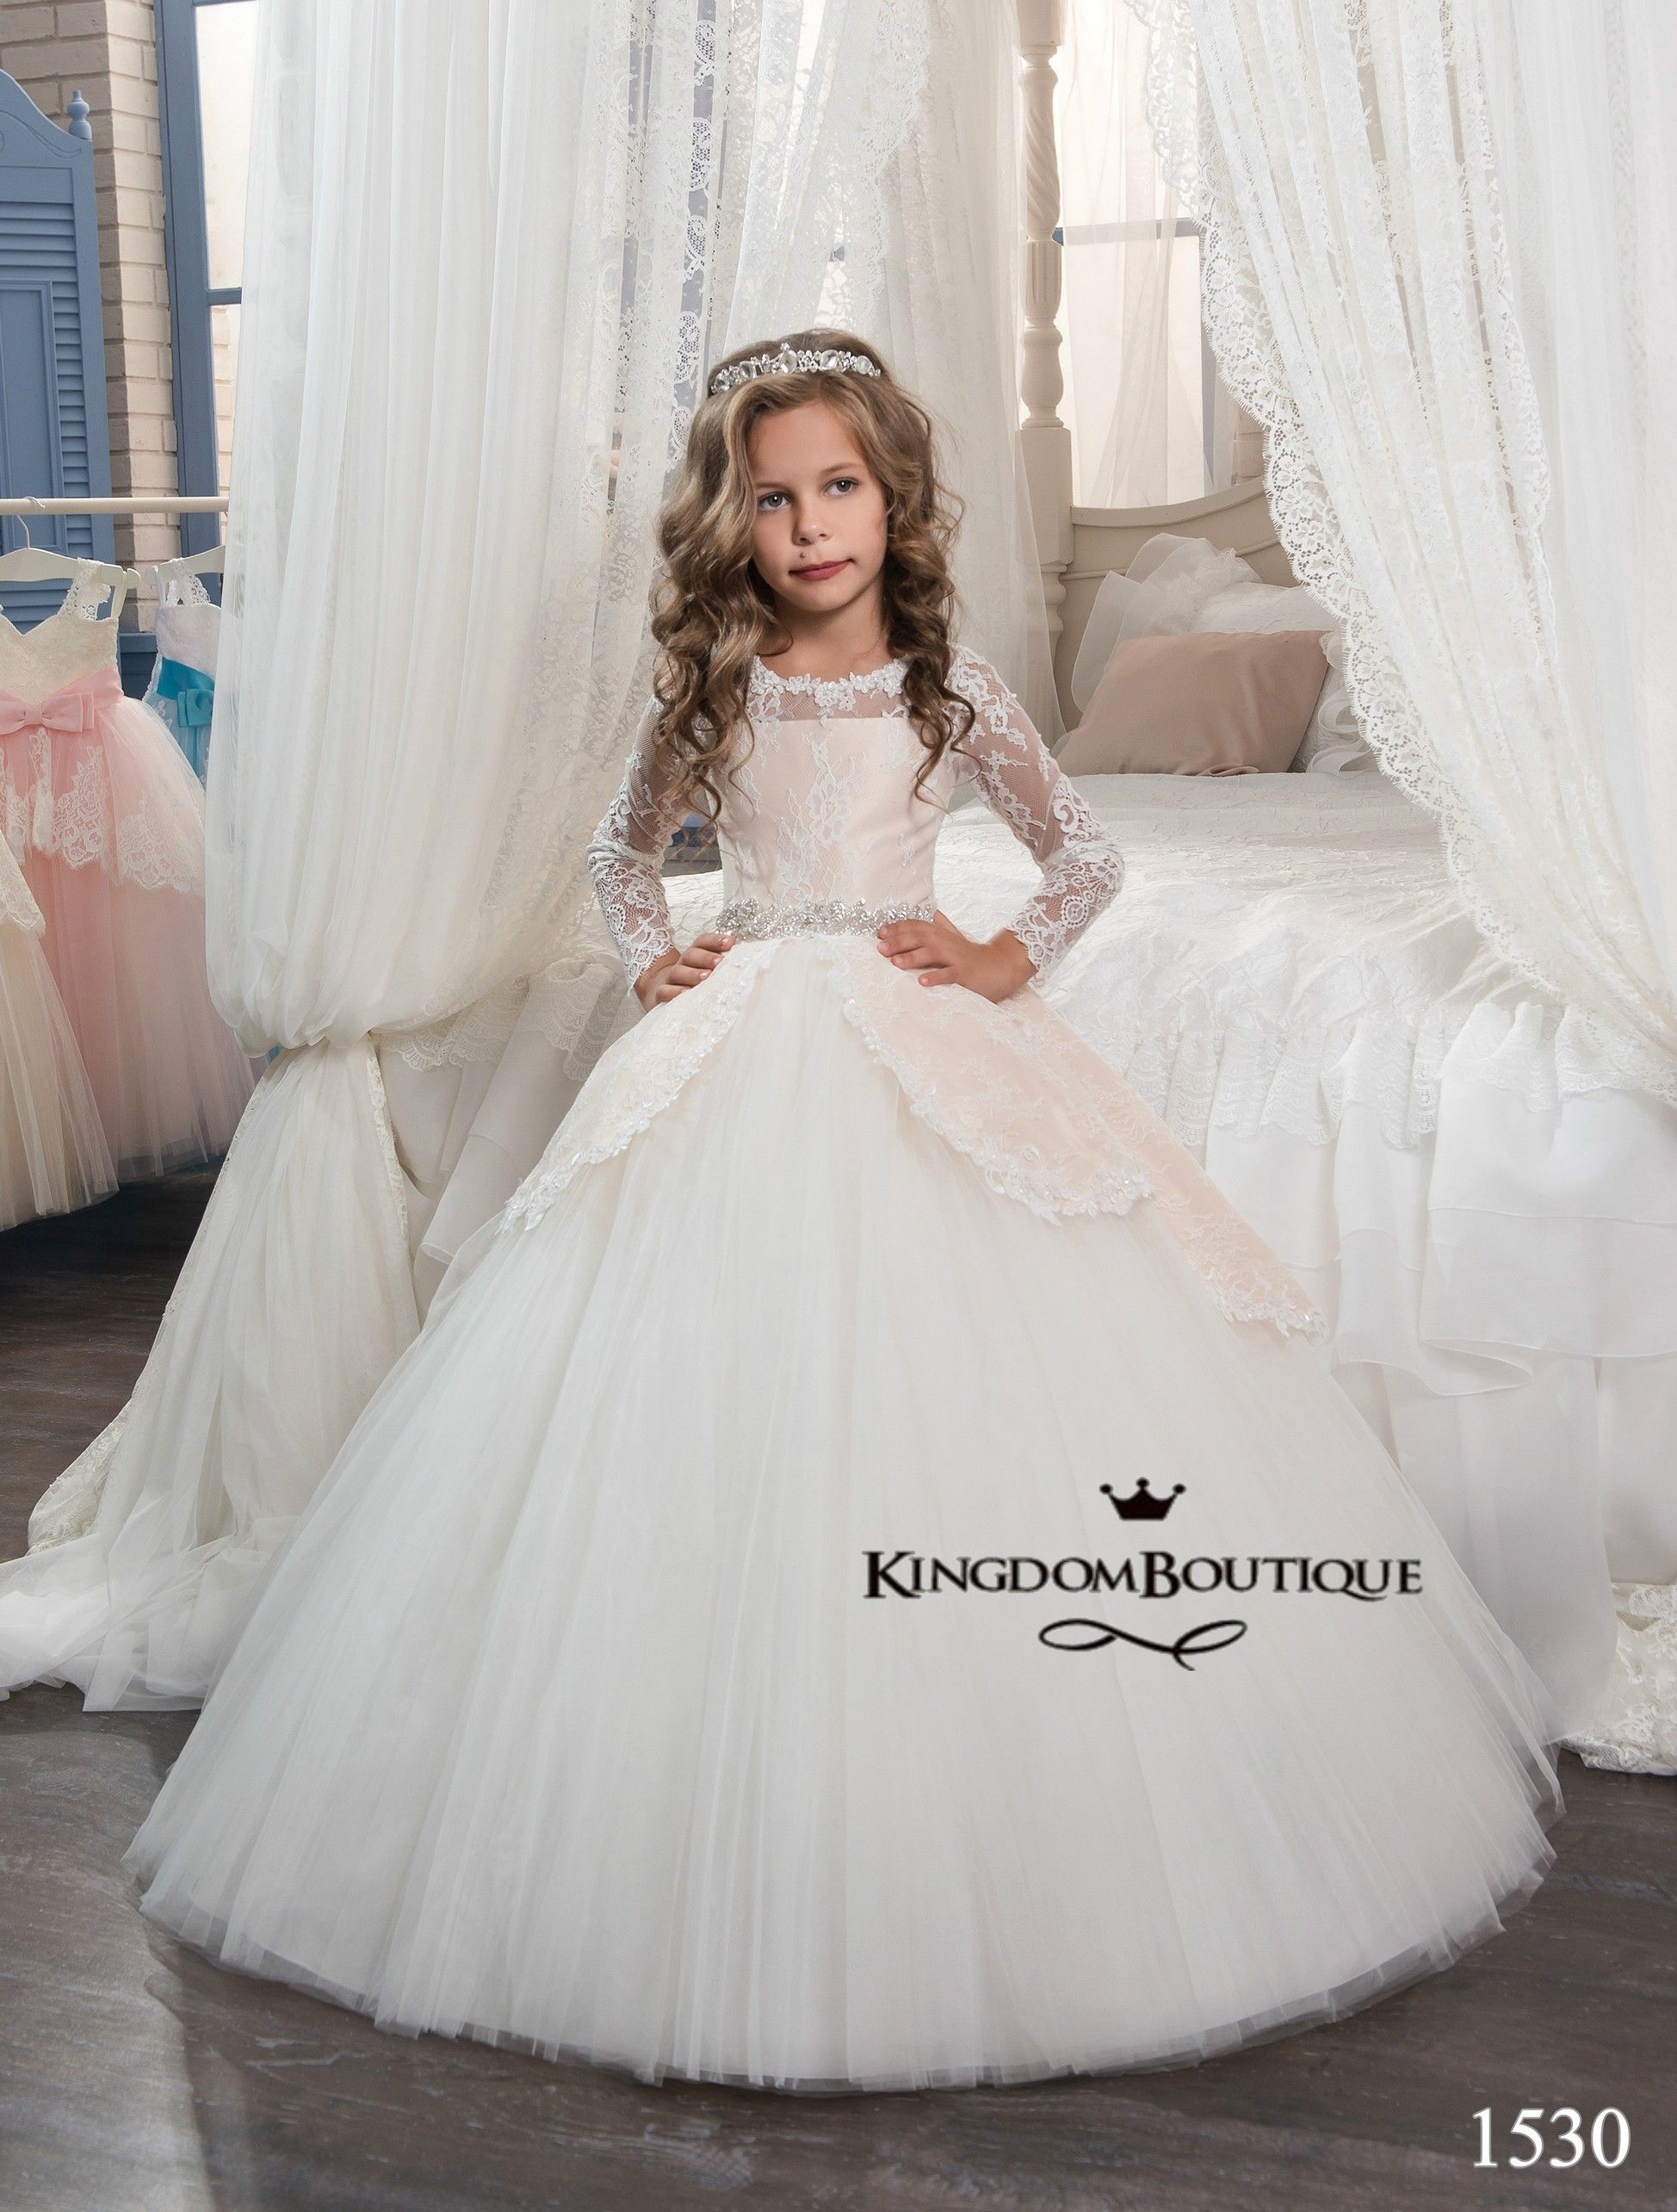 Black and yellow dress kids  Cappuccino Kingdom Boutique childrenus gowns for special events